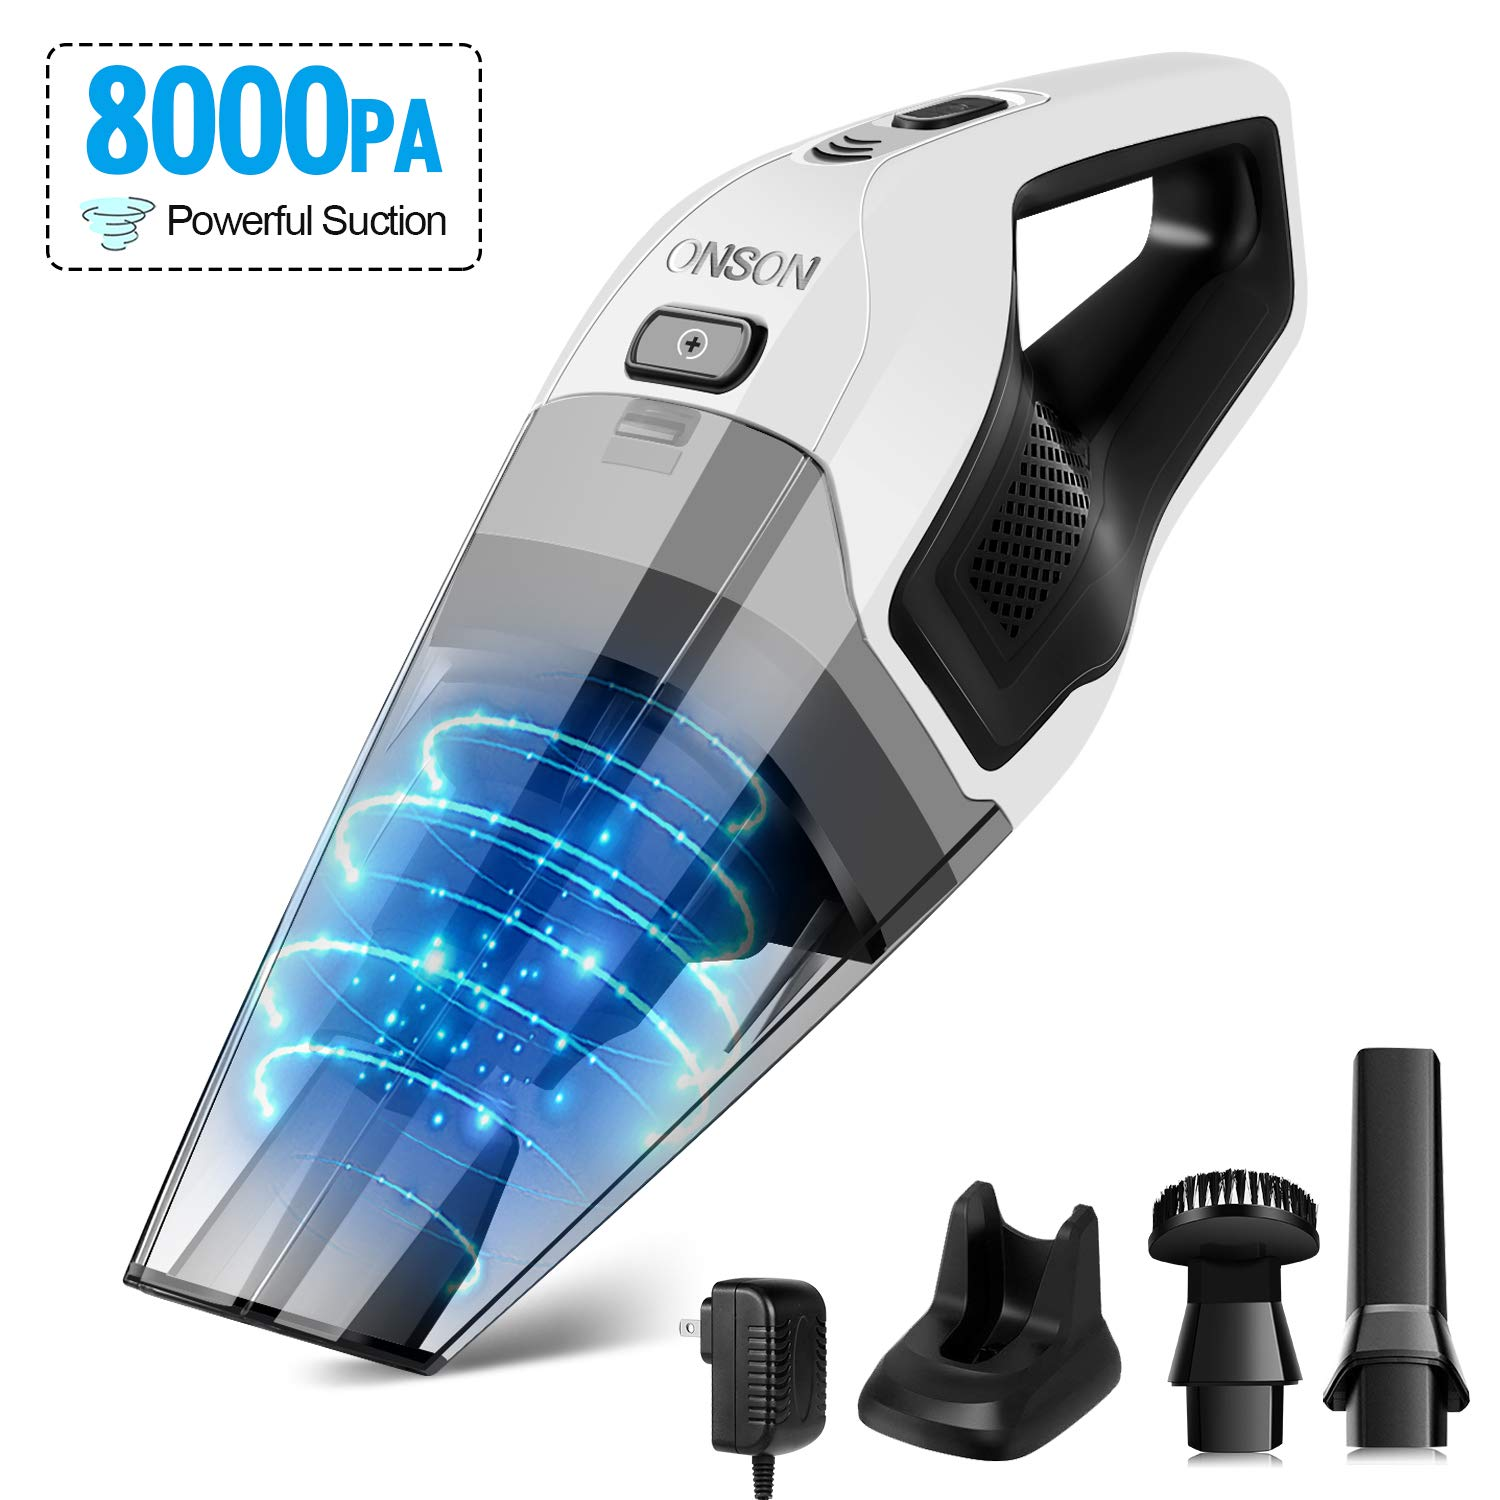 Handheld Vacuum Cordless, ONSON Hand Vacuum with Rechargeable Quick Charge, Lightweight Mini Hand Vac Portable Hand Held Vacuum Cordless for Home, Kitchen, Car Wet Dry Cleaning